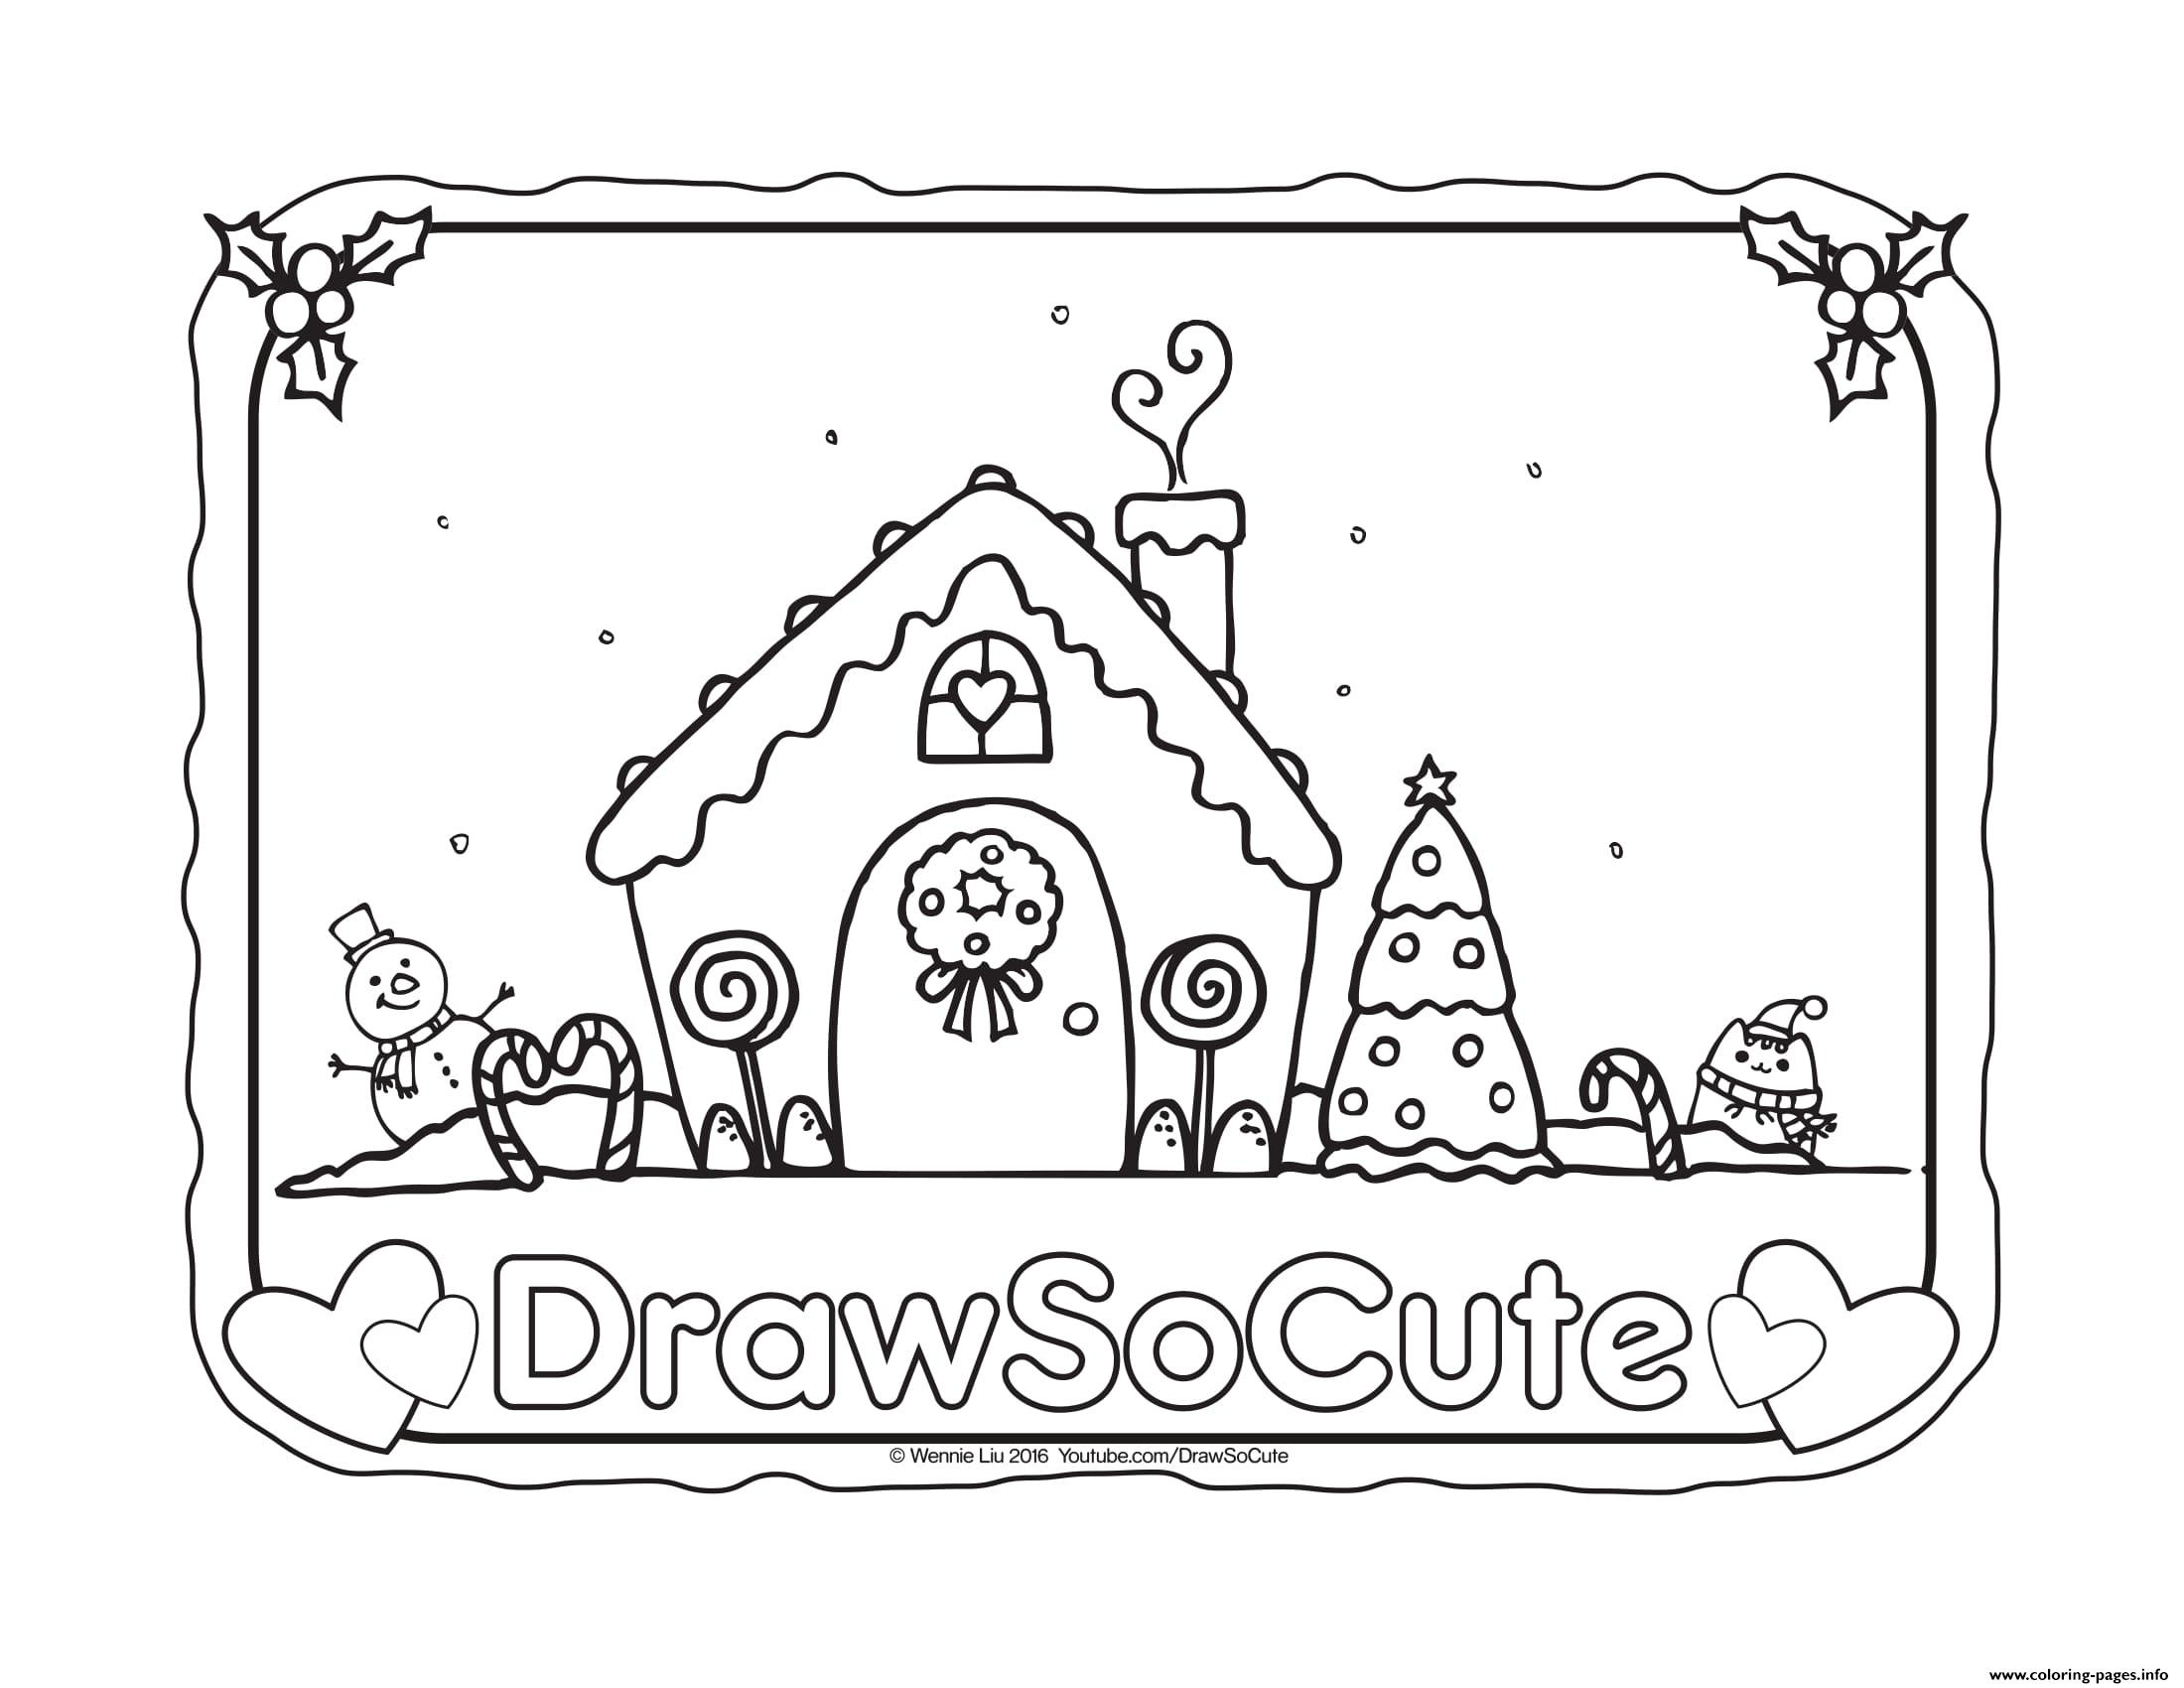 gingerbread house draw so cute coloring pages printable